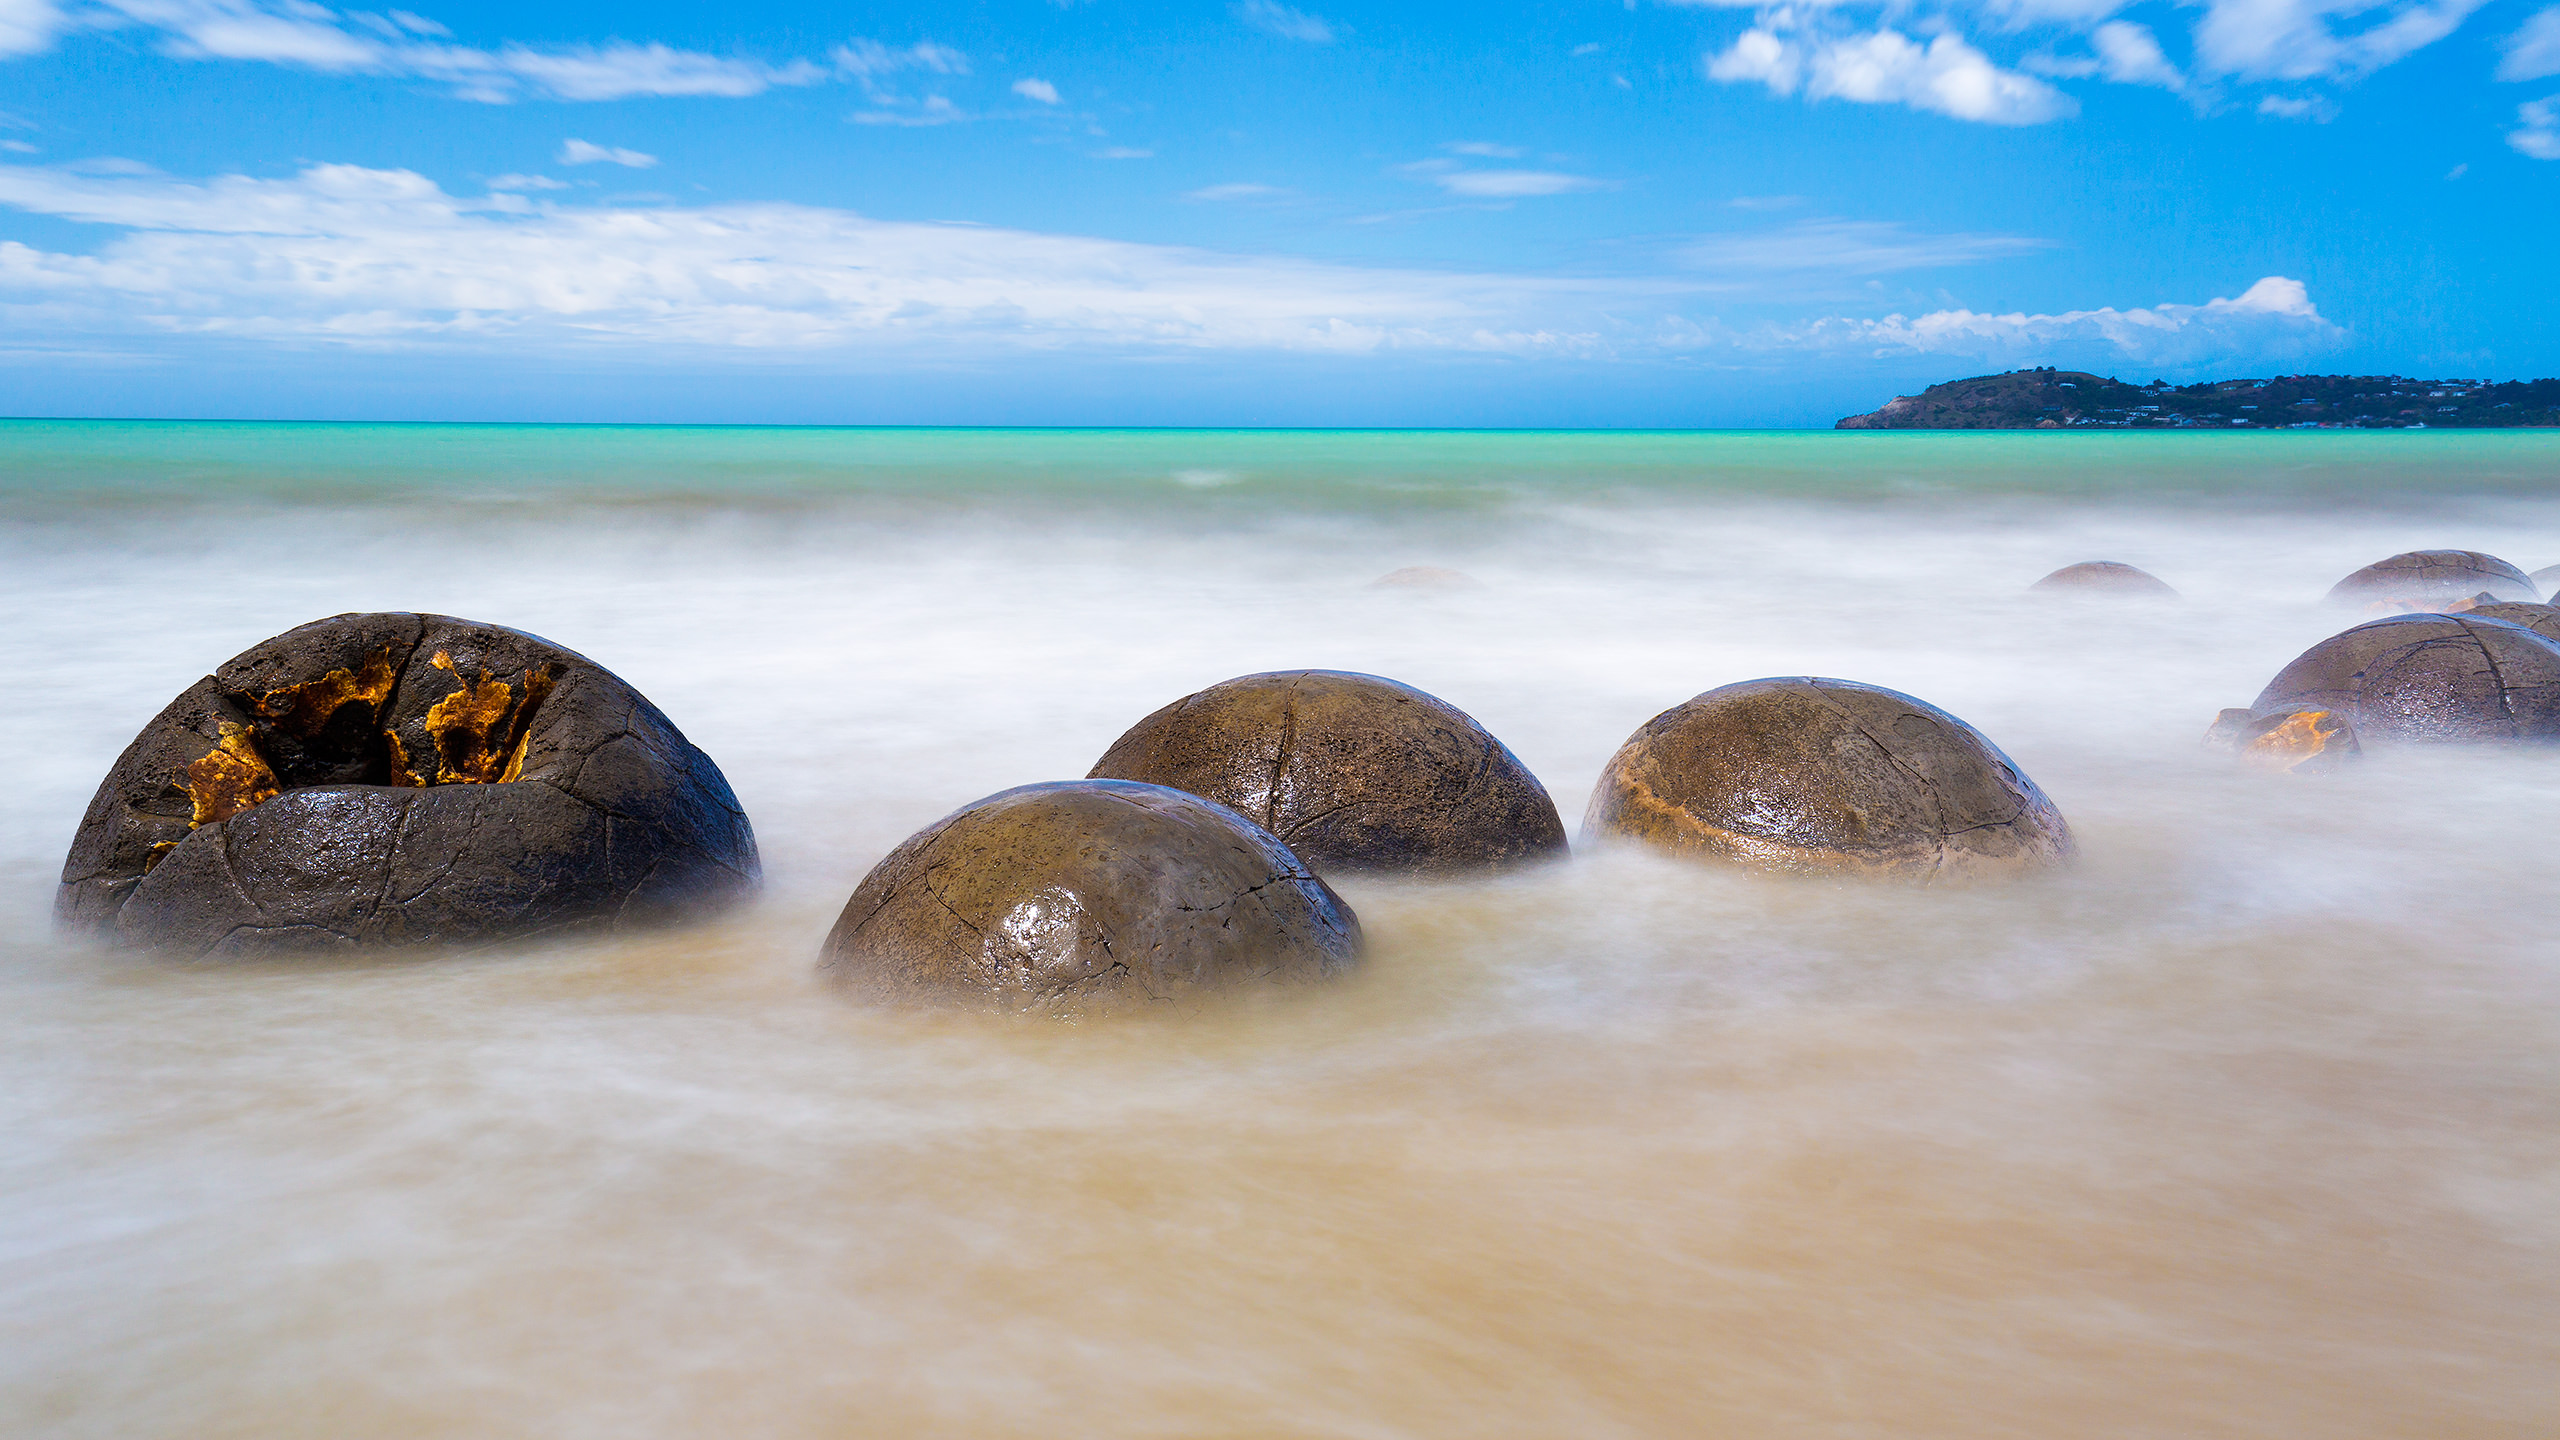 Moeraki Boulder New Zealand by Arindam Bhattacharya